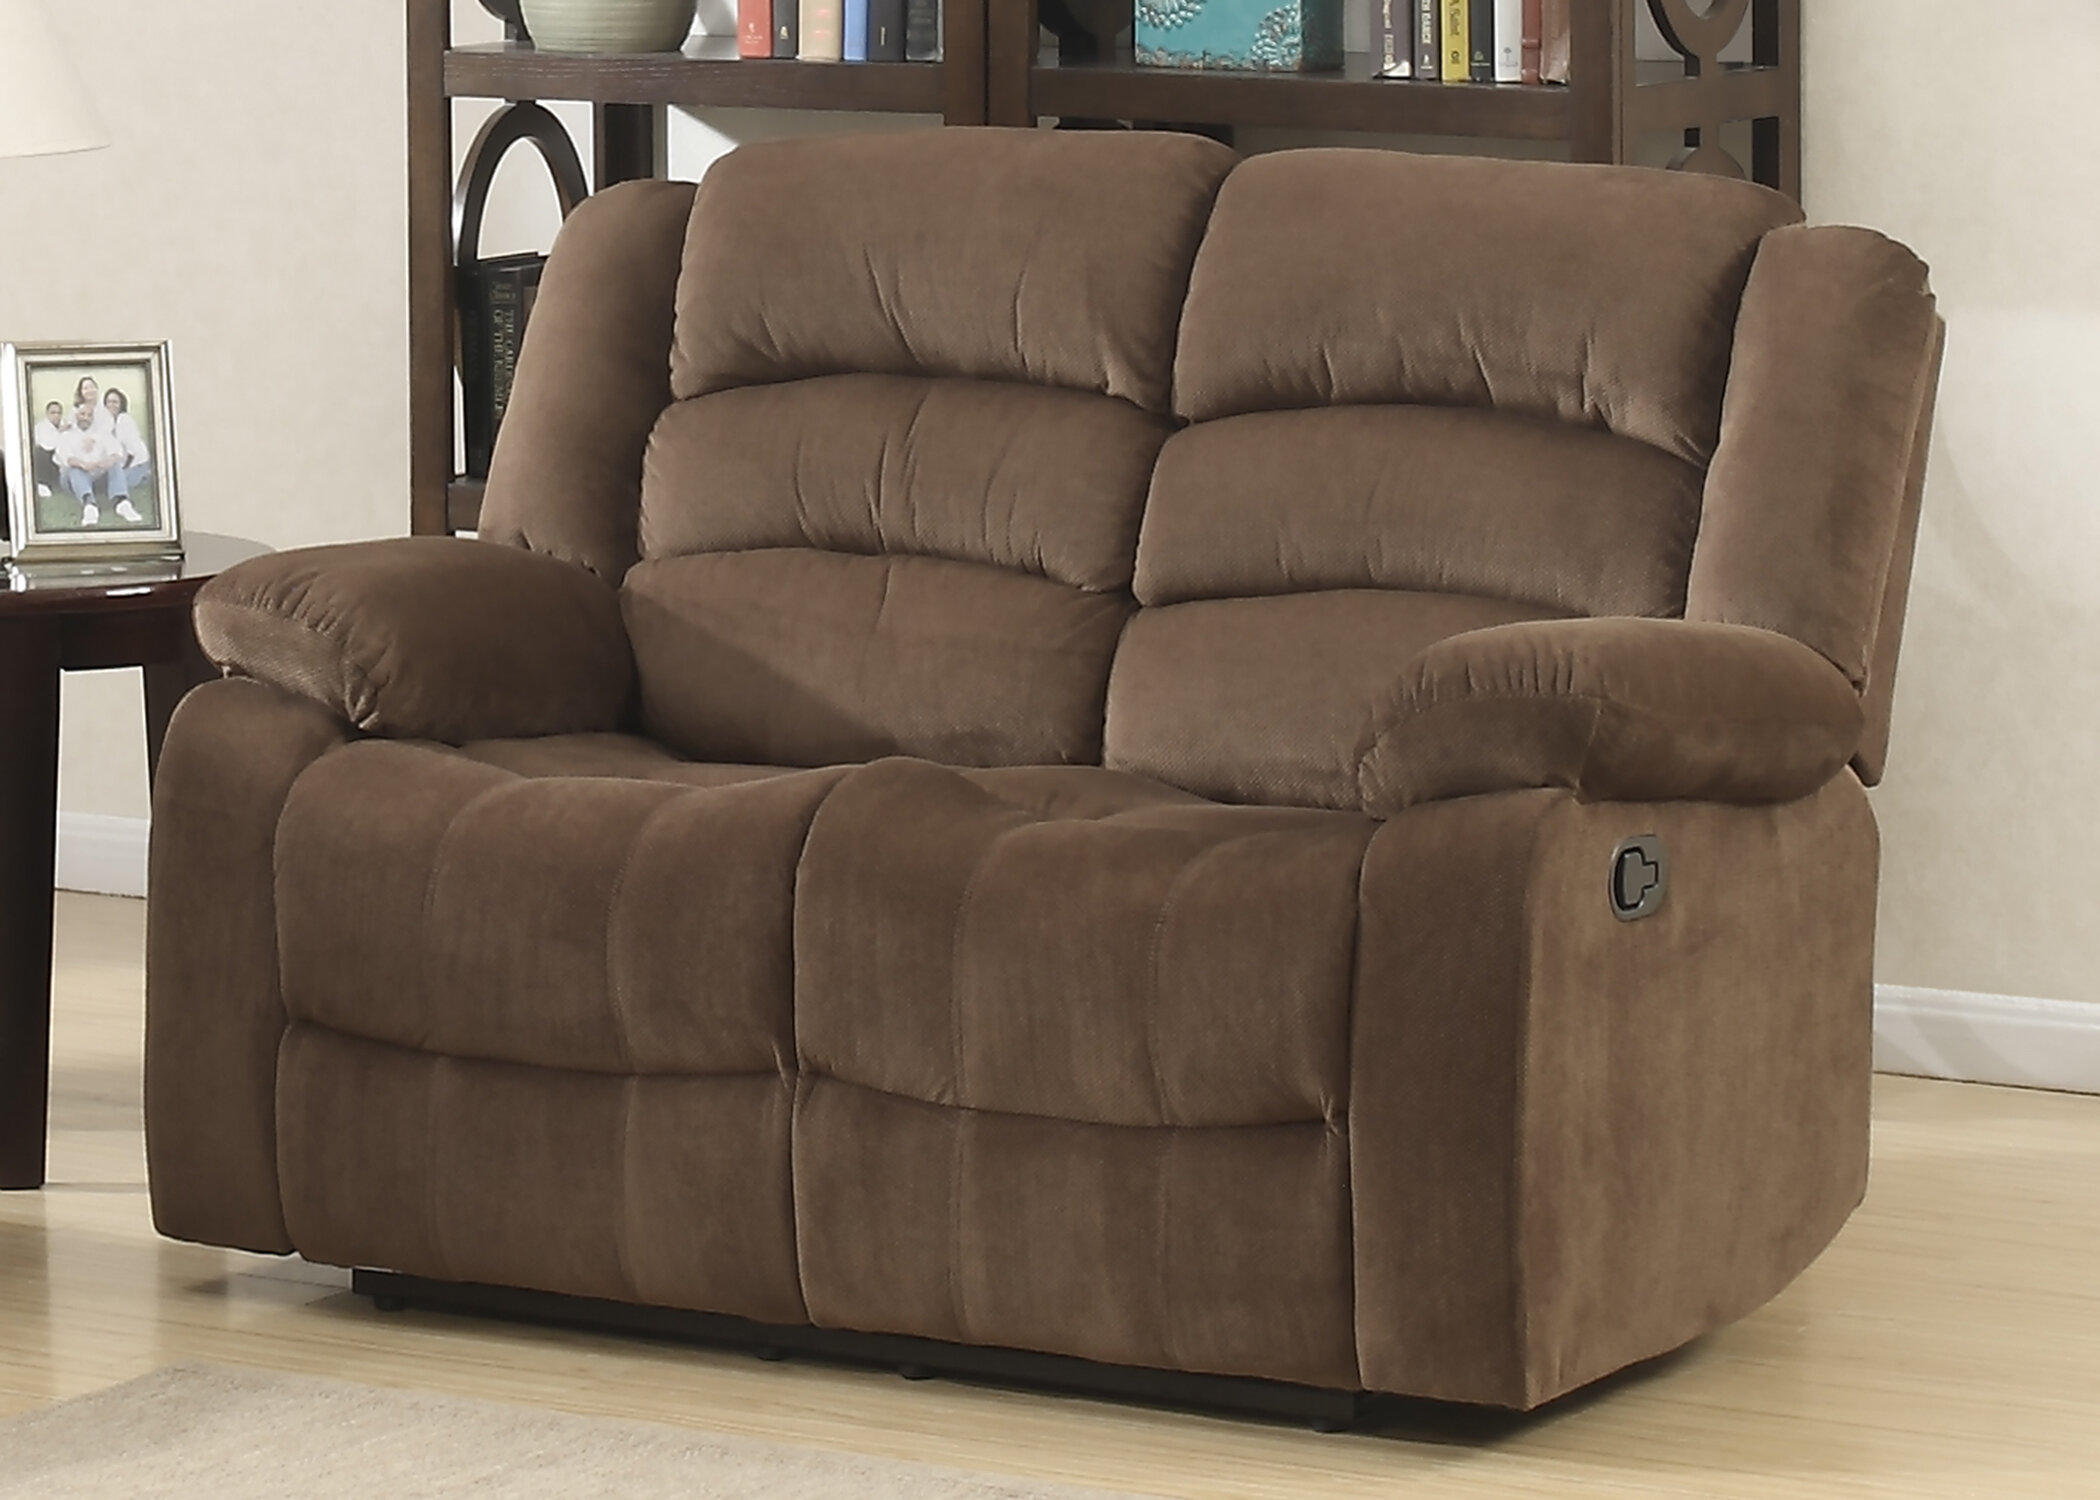 color contemporary fabric sofa grey loveseat side furniture store chair products preview edmonton